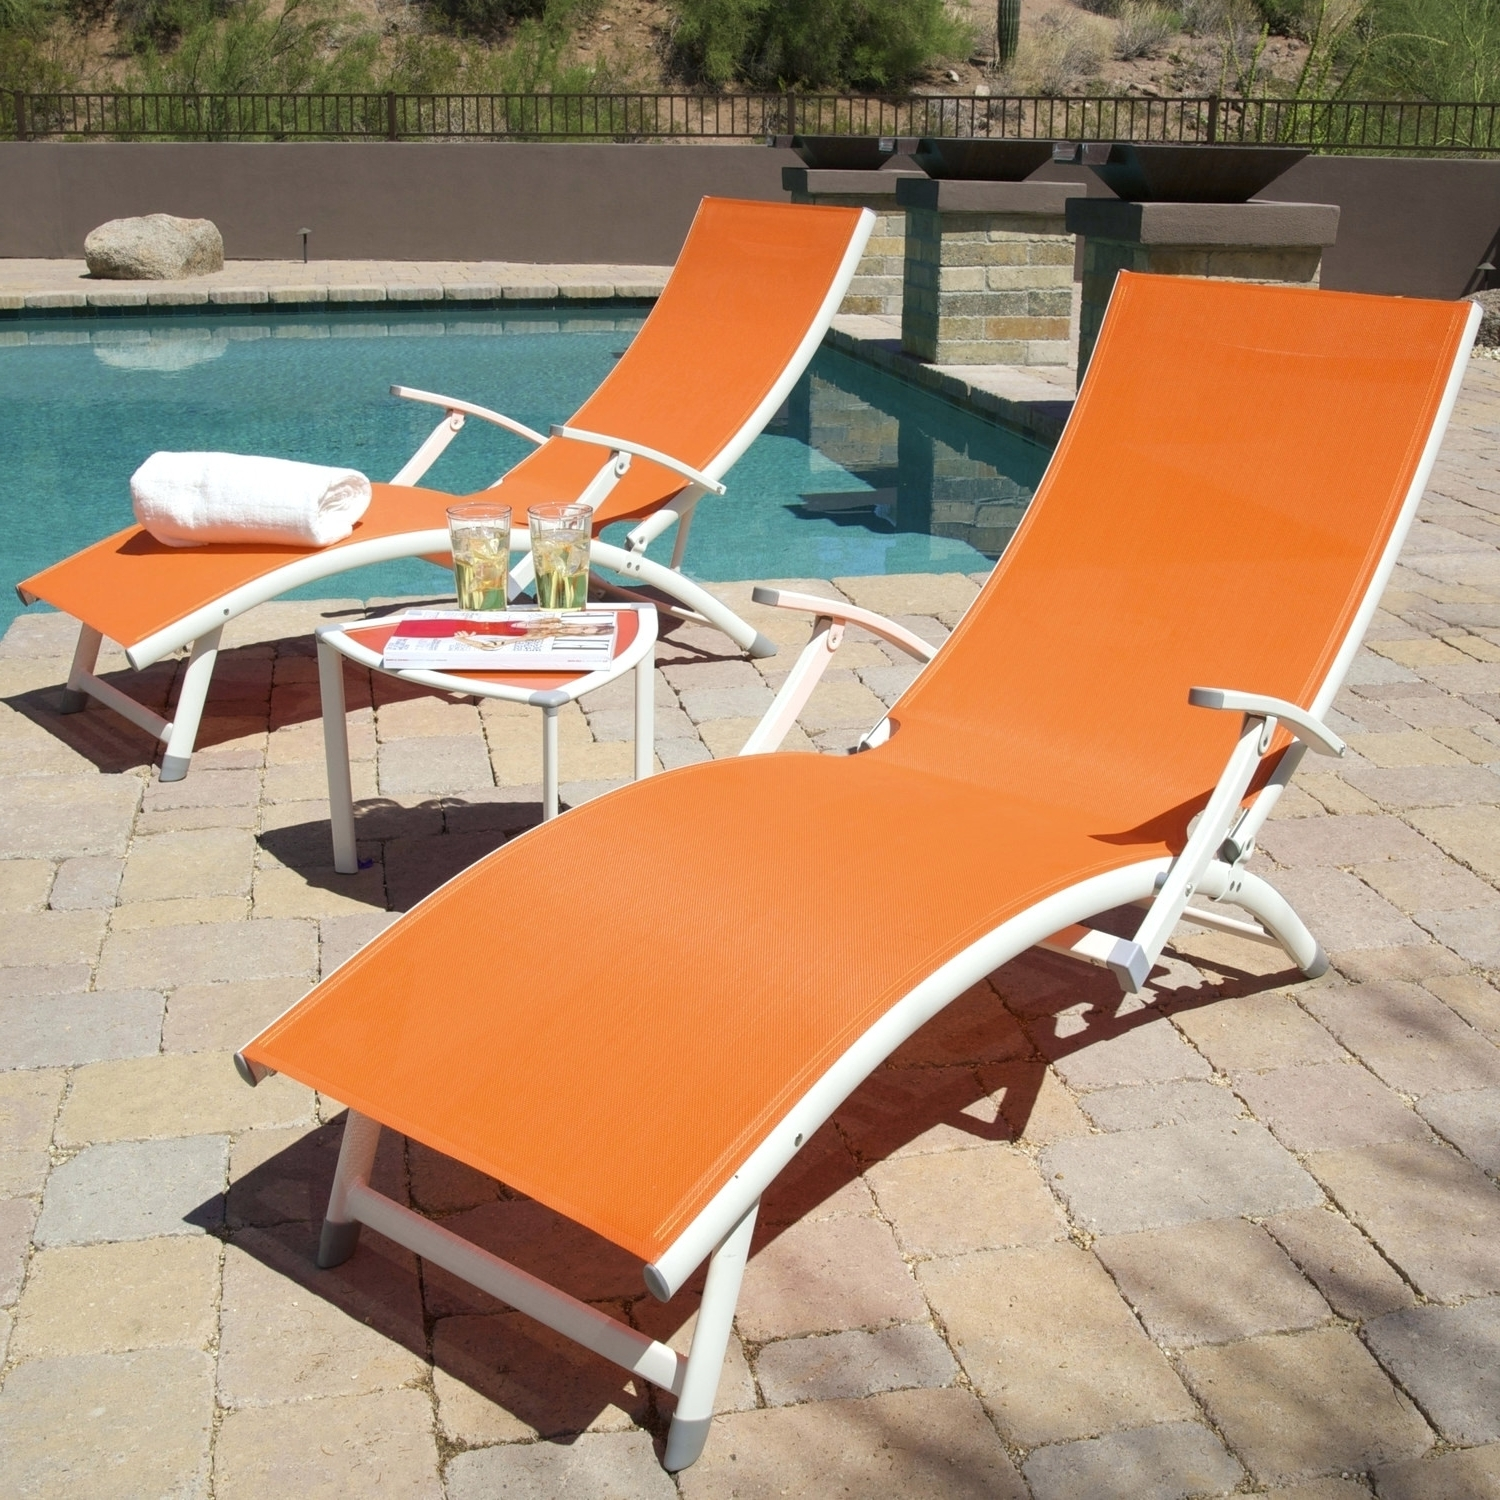 Most Recently Released Image Of Modern Folding Chaise Lounge Chair Pvc Outdoor Chaise Pertaining To Pvc Outdoor Chaise Lounge Chairs (View 5 of 15)